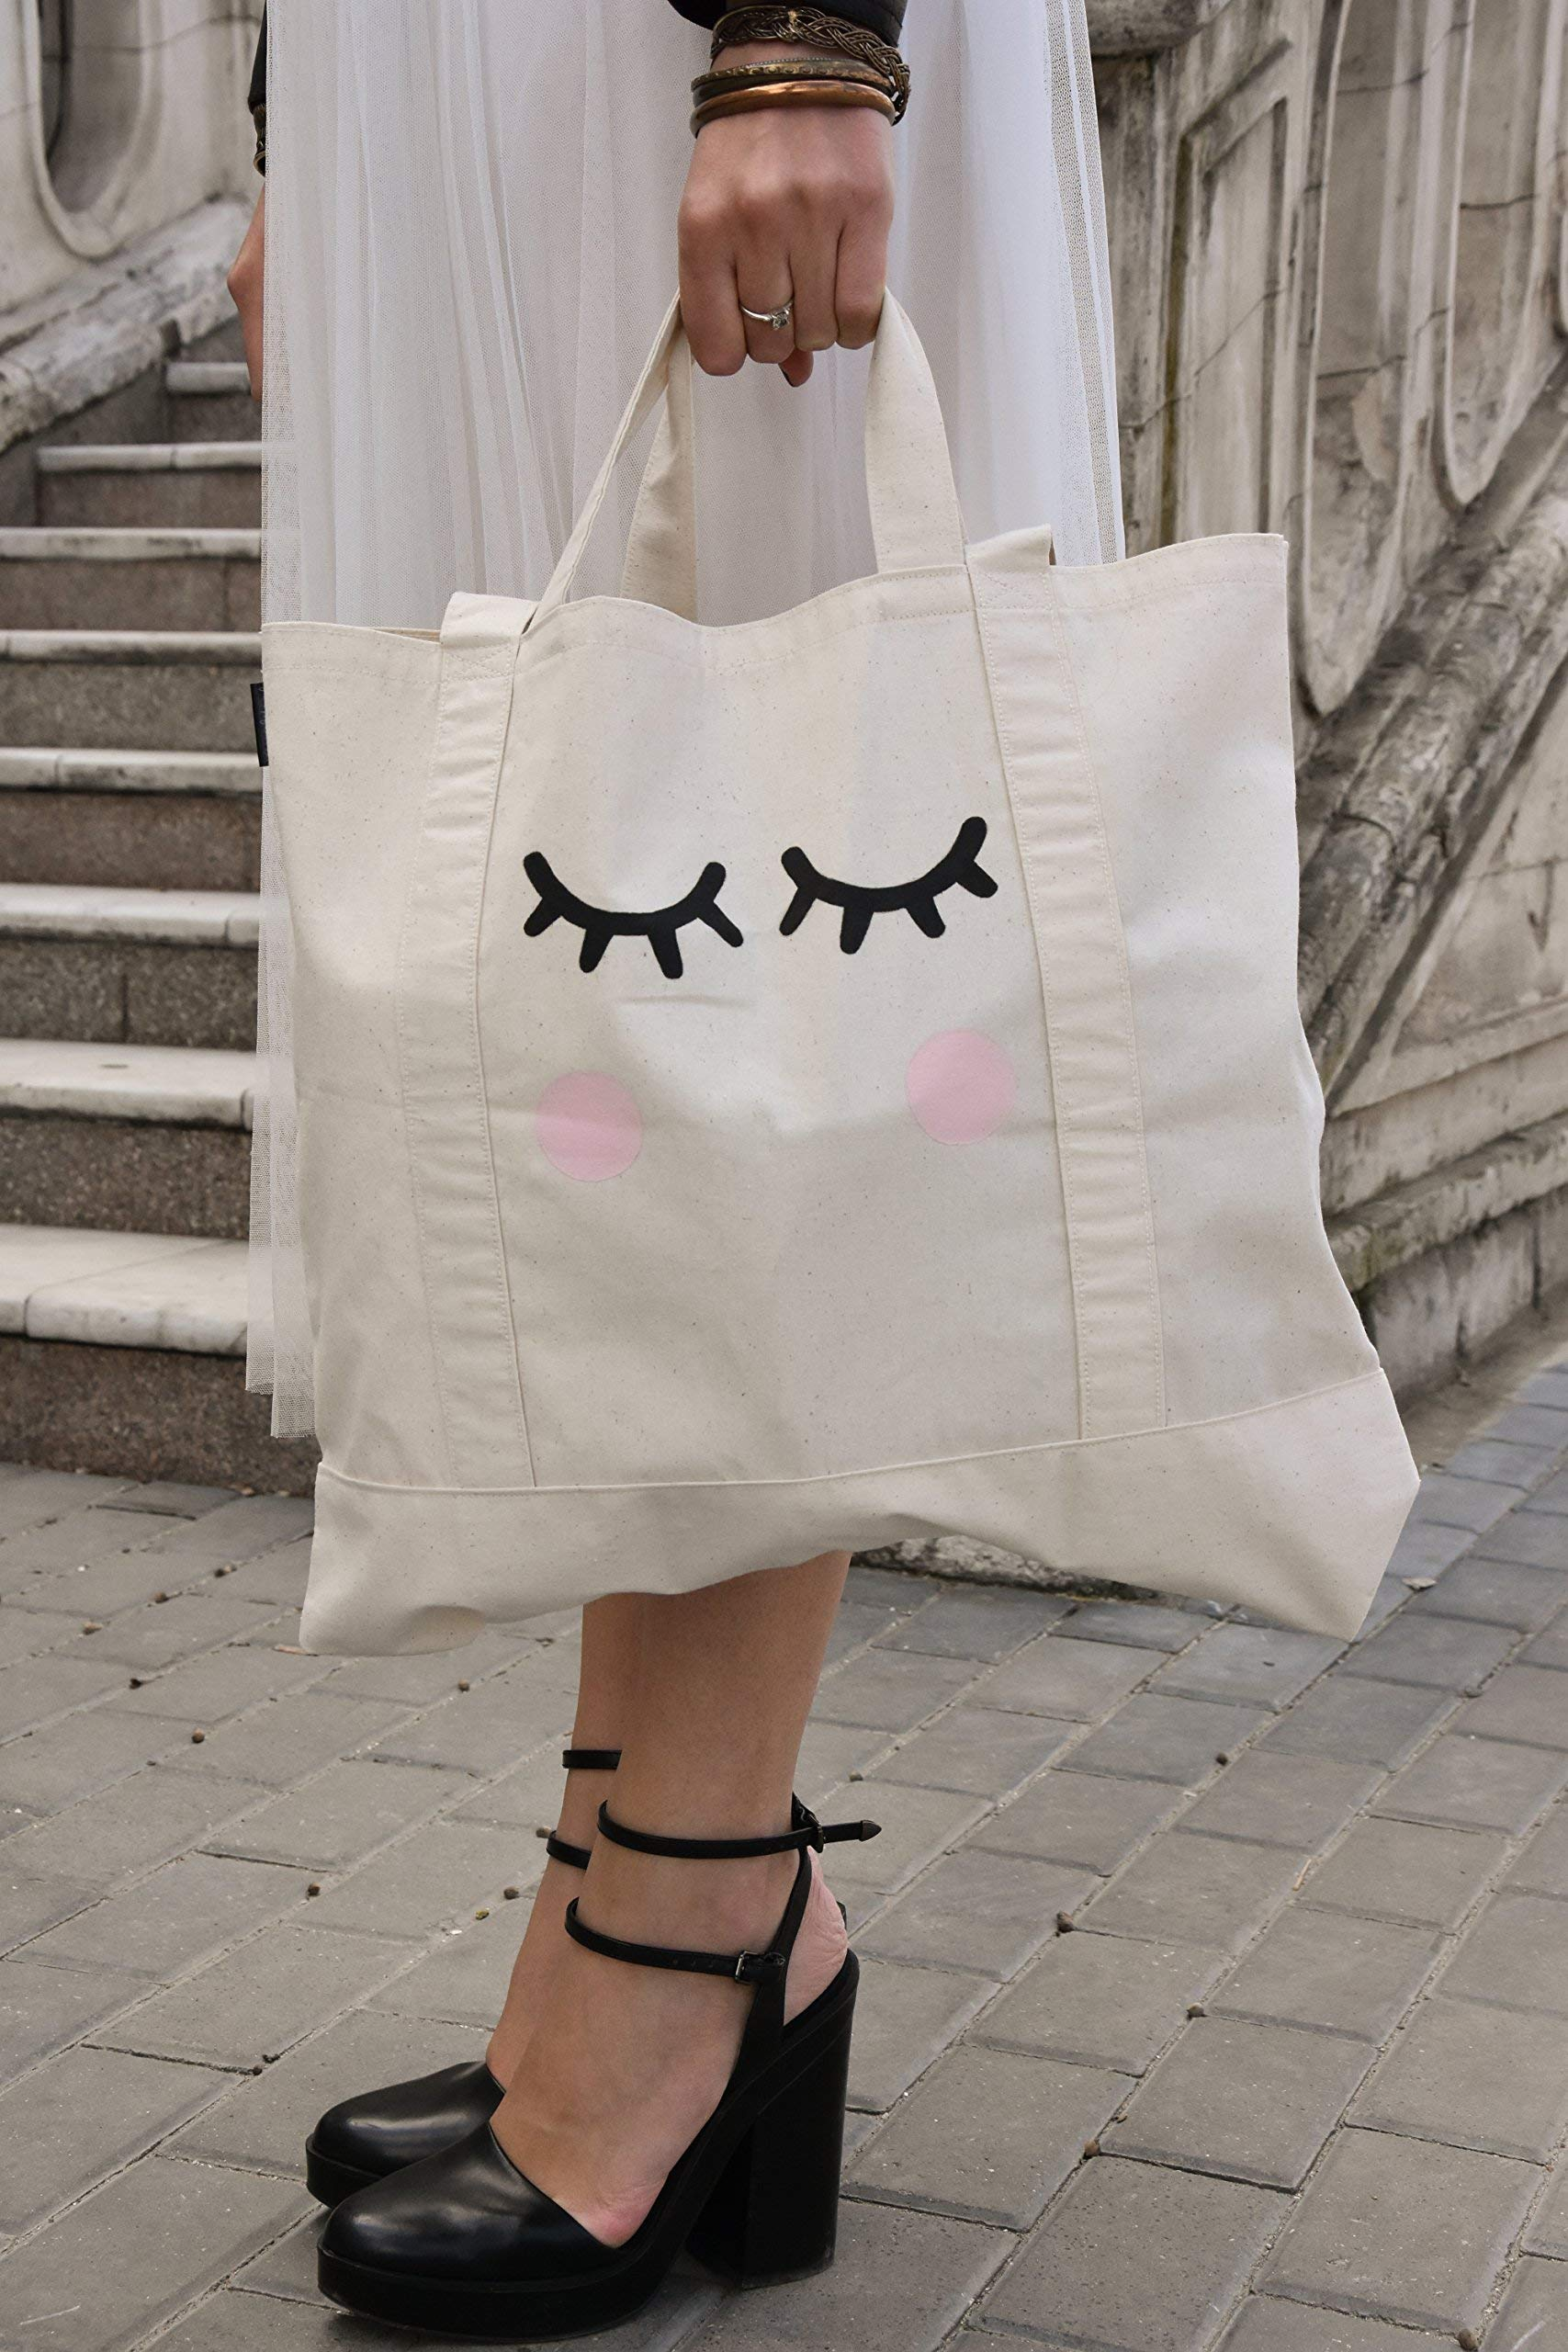 Eco-friendly Reusable Canvas Grocery Tote Bag Cutie Handmade by EcoMood, Natural materials, Hand Painted Tote Bags